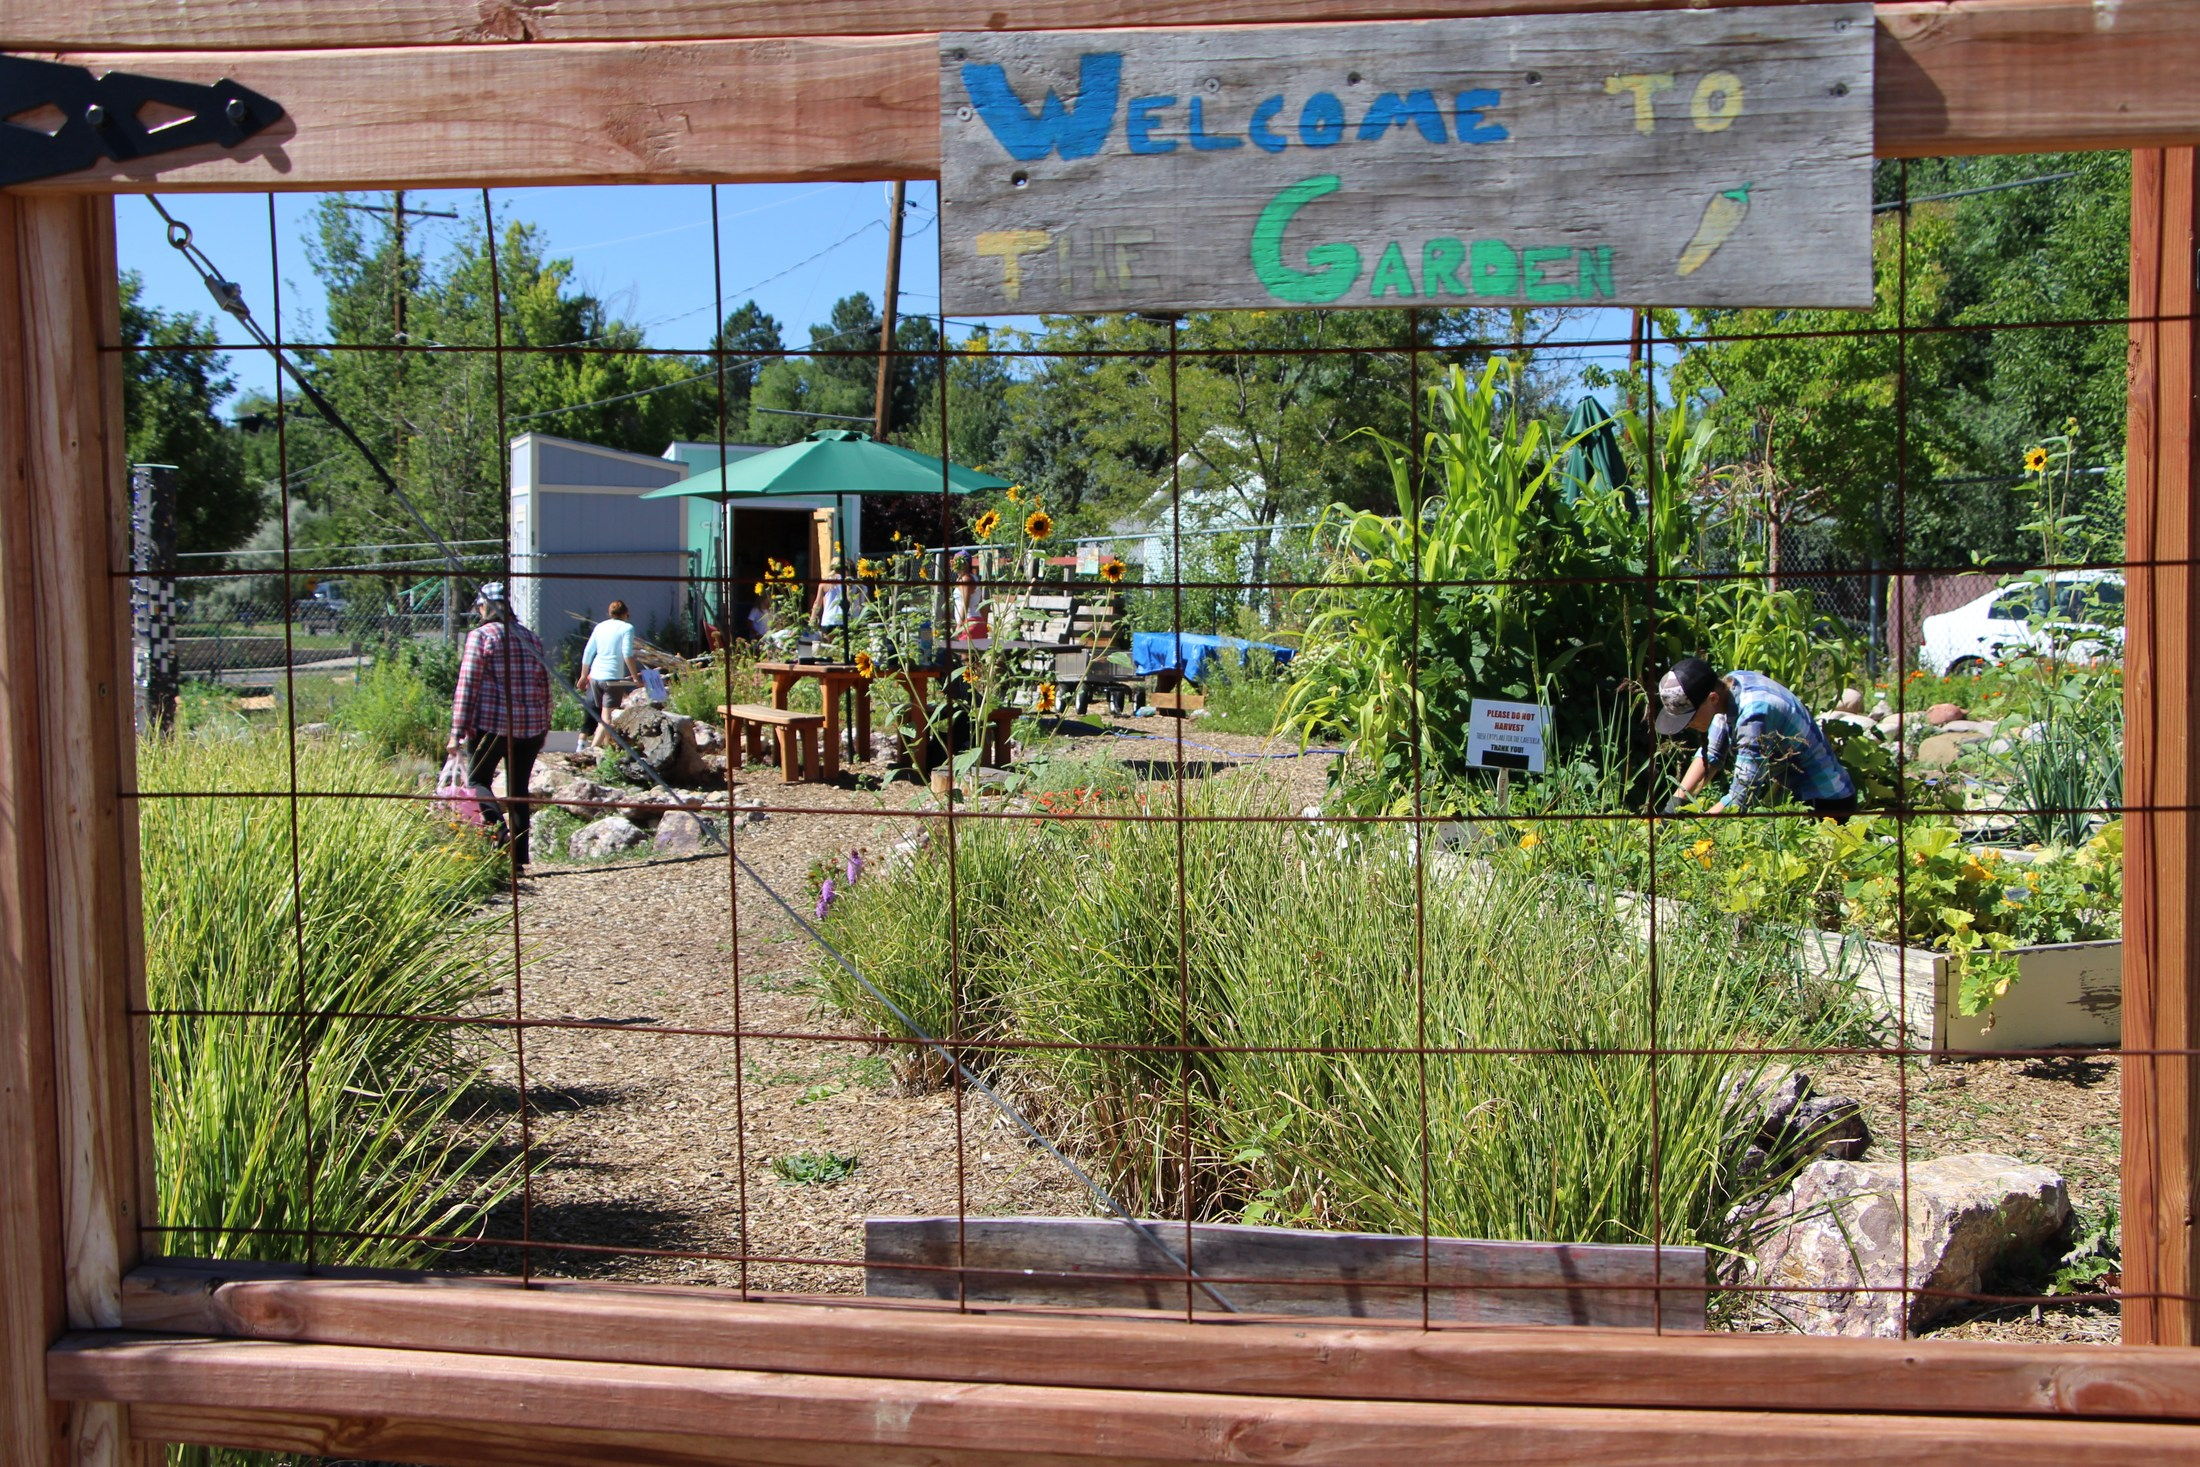 Needham school and community garden.